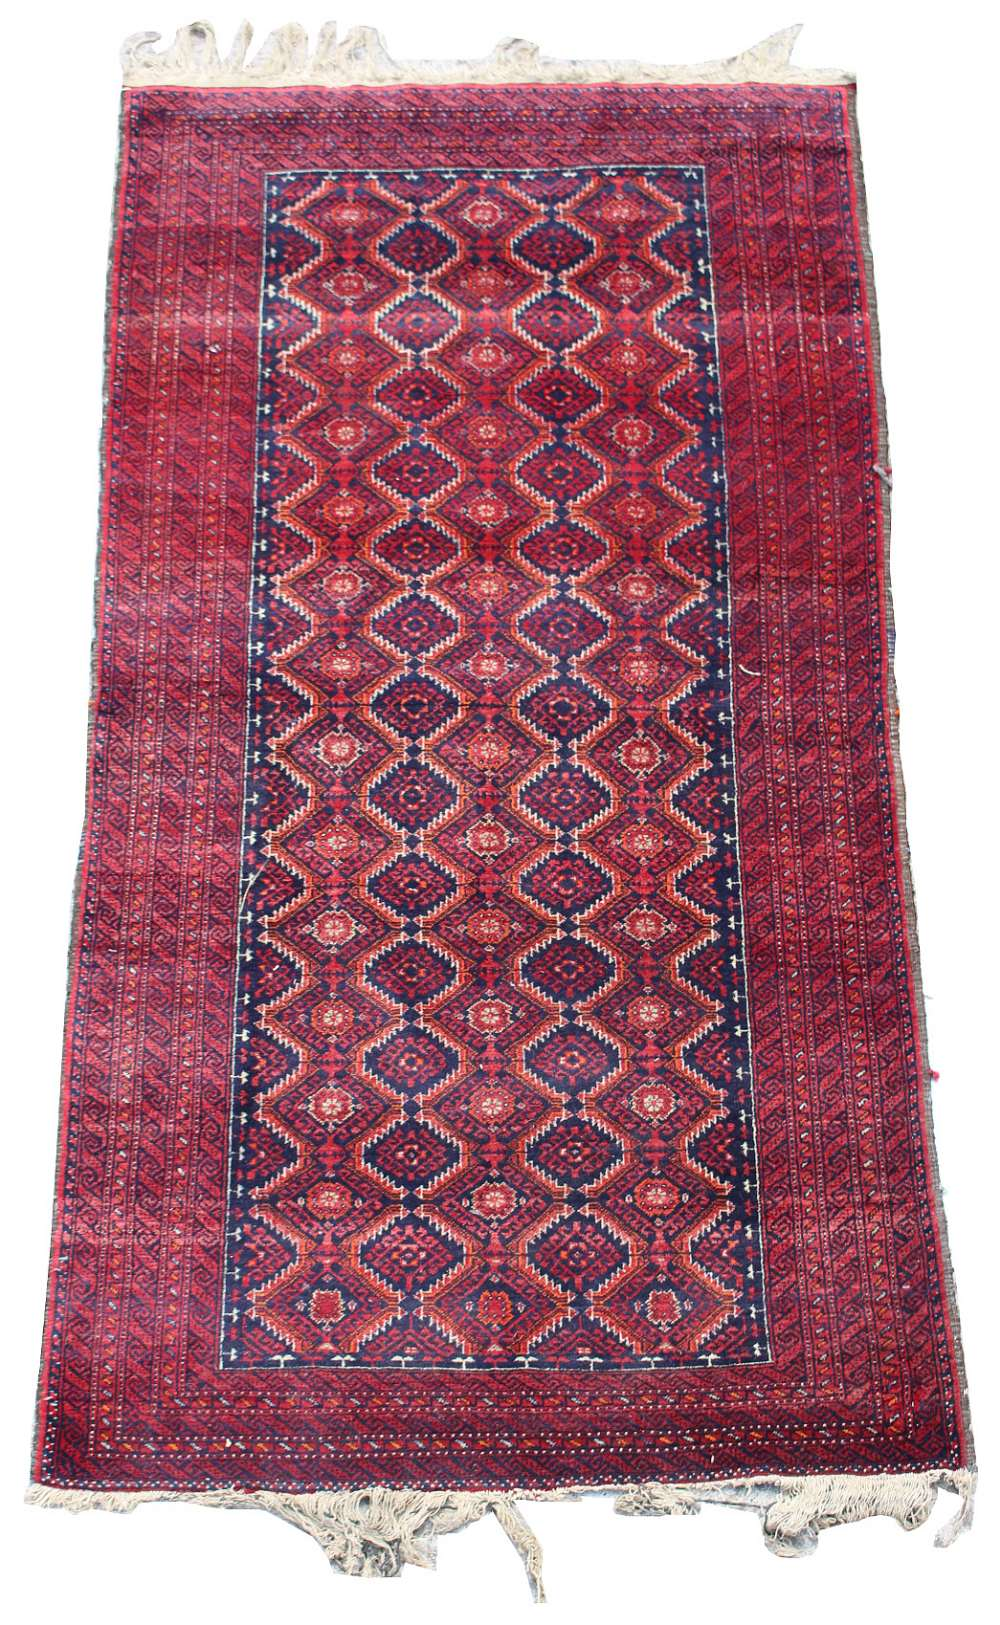 Lot 53 - Property of a deceased estate - an early / mid 20th century Turkoman rug, 71 by 38ins. (181 by